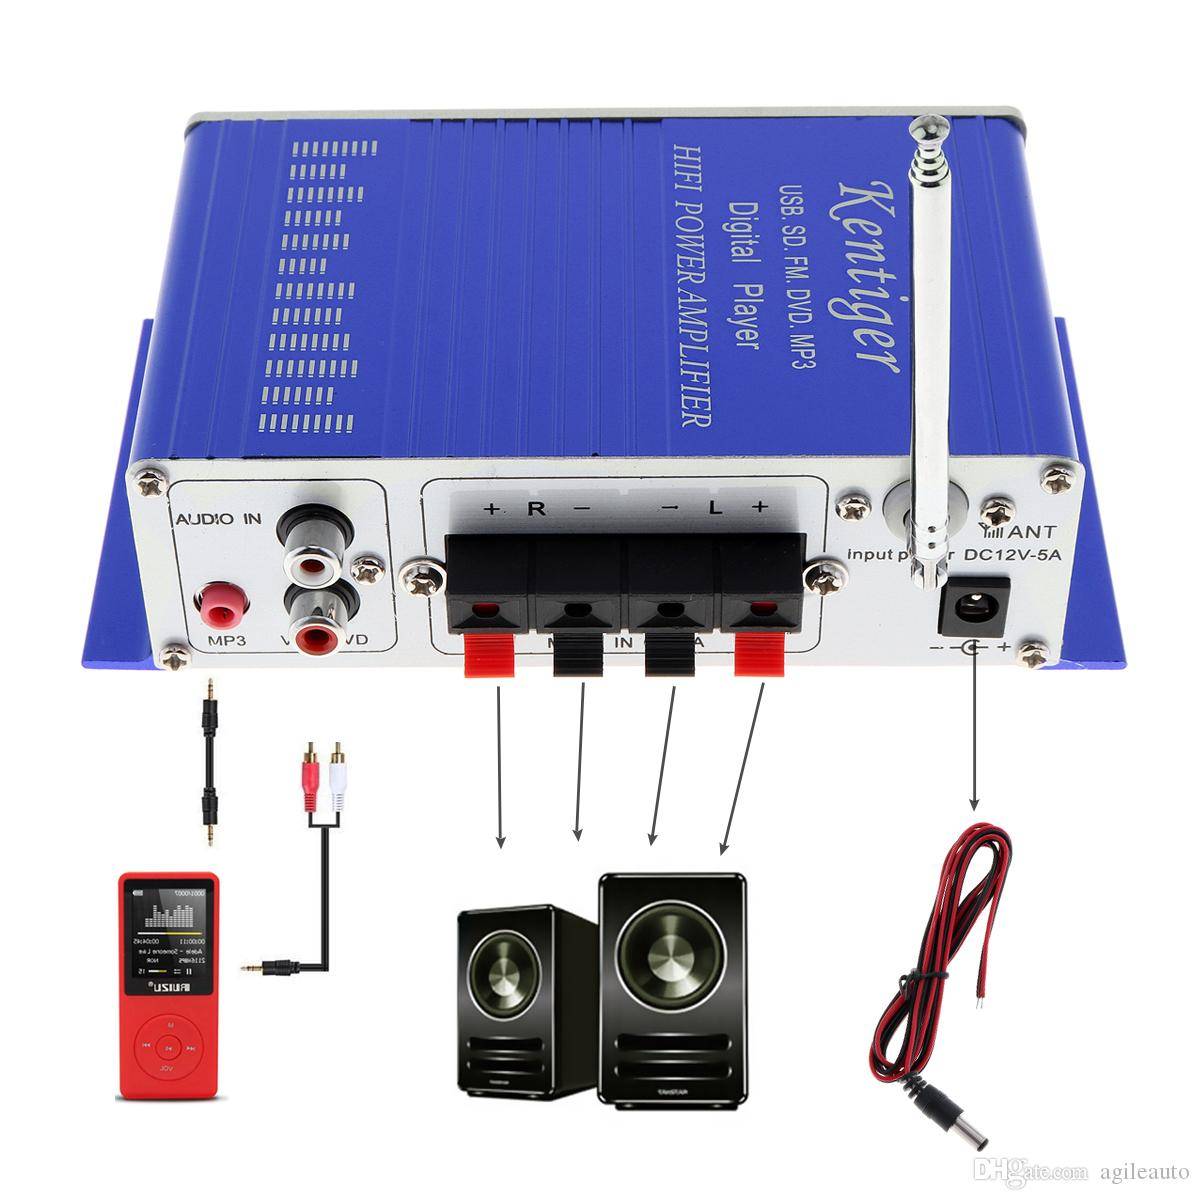 hight resolution of hy502 digital display hi fi 50wx4 2ch car stereo power amplifier amp support ipod usb mp3 fm sd jack input cec 813 car stereo websites car stereo wiring